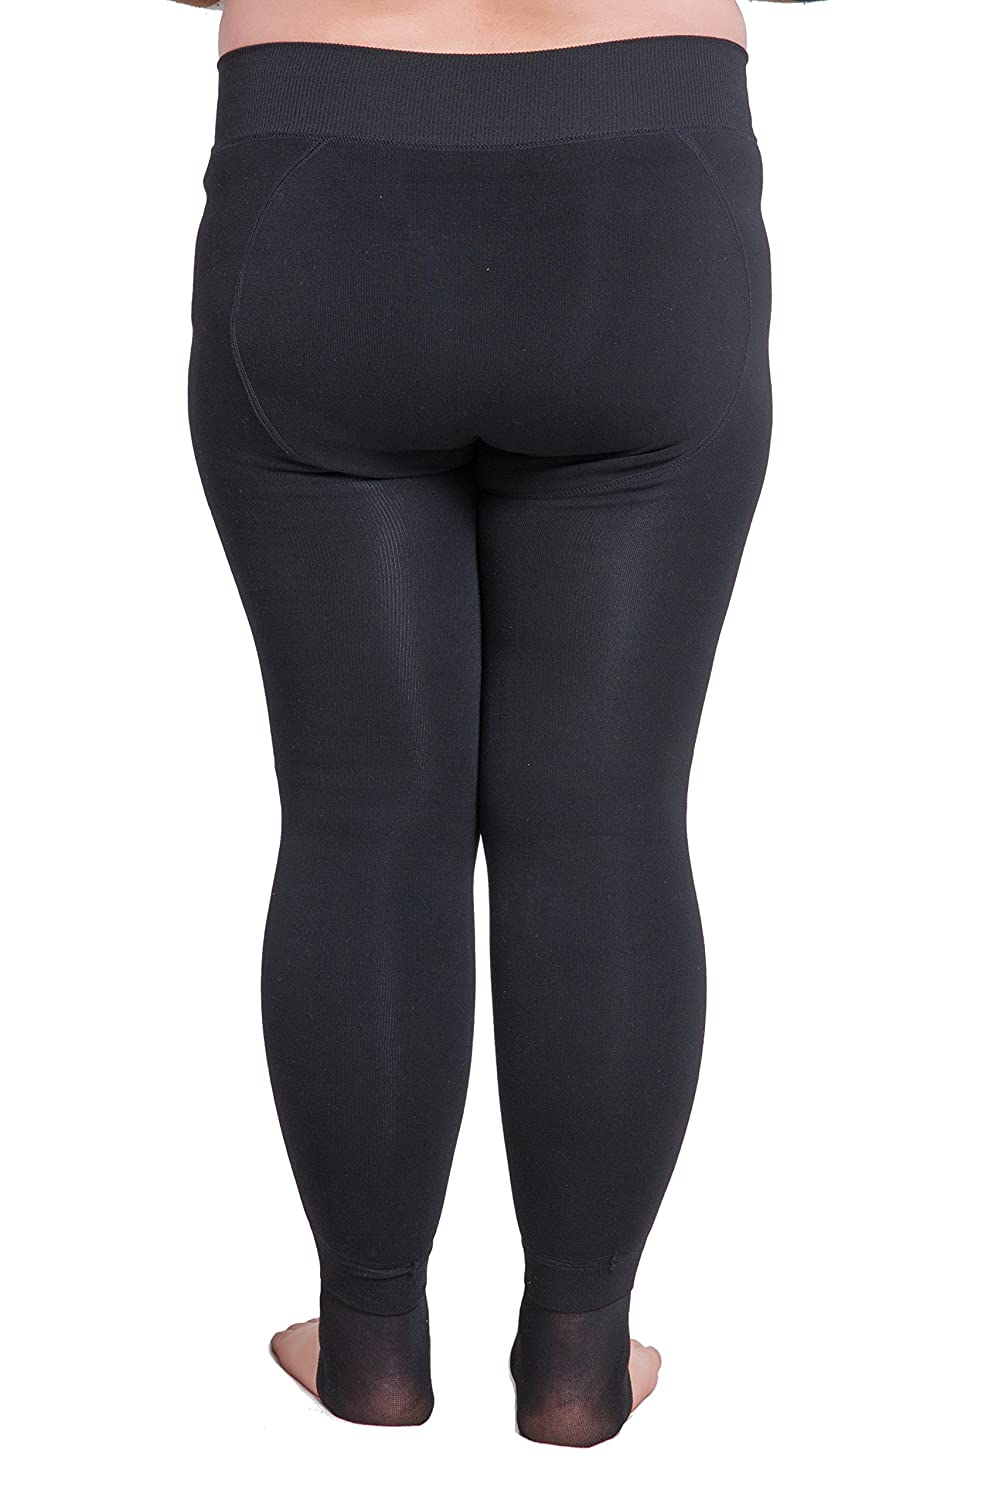 794456a9c637b5 UP Women's Plus Size Winter Warm Thick Pants Thermal Full Length Leggings:  Amazon.co.uk: Clothing